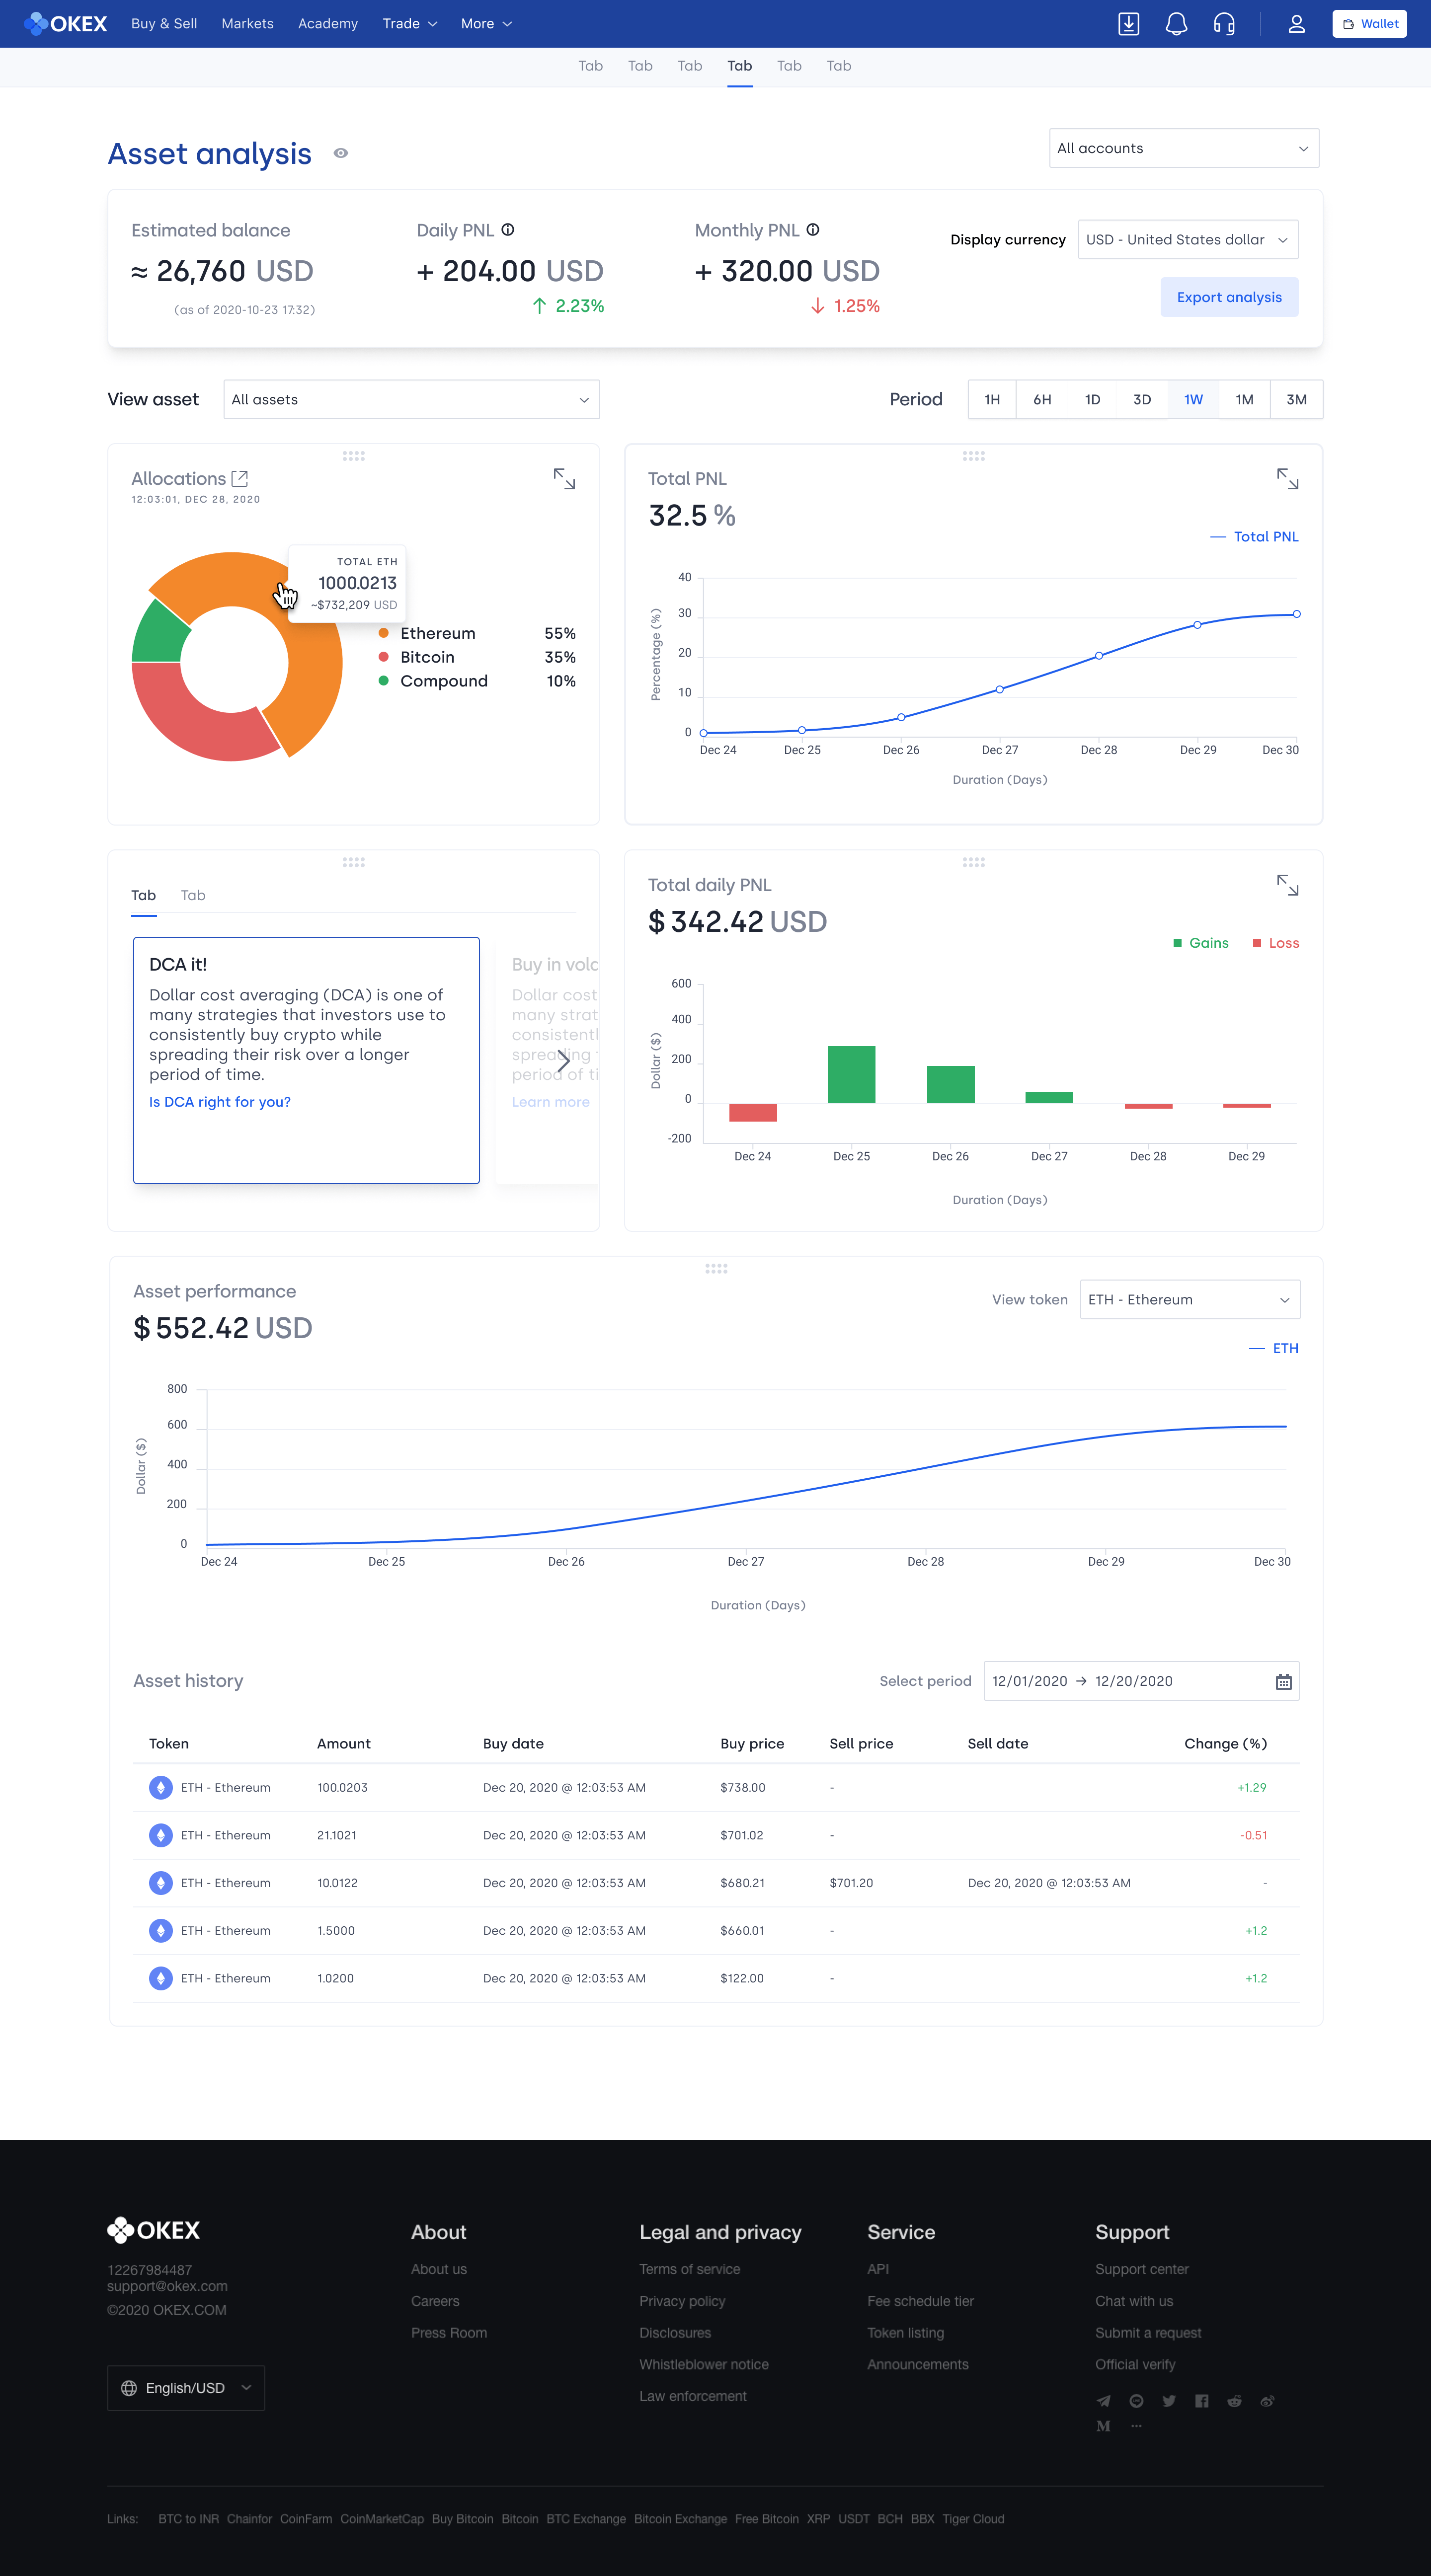 Initial idea of the asset analysis overview